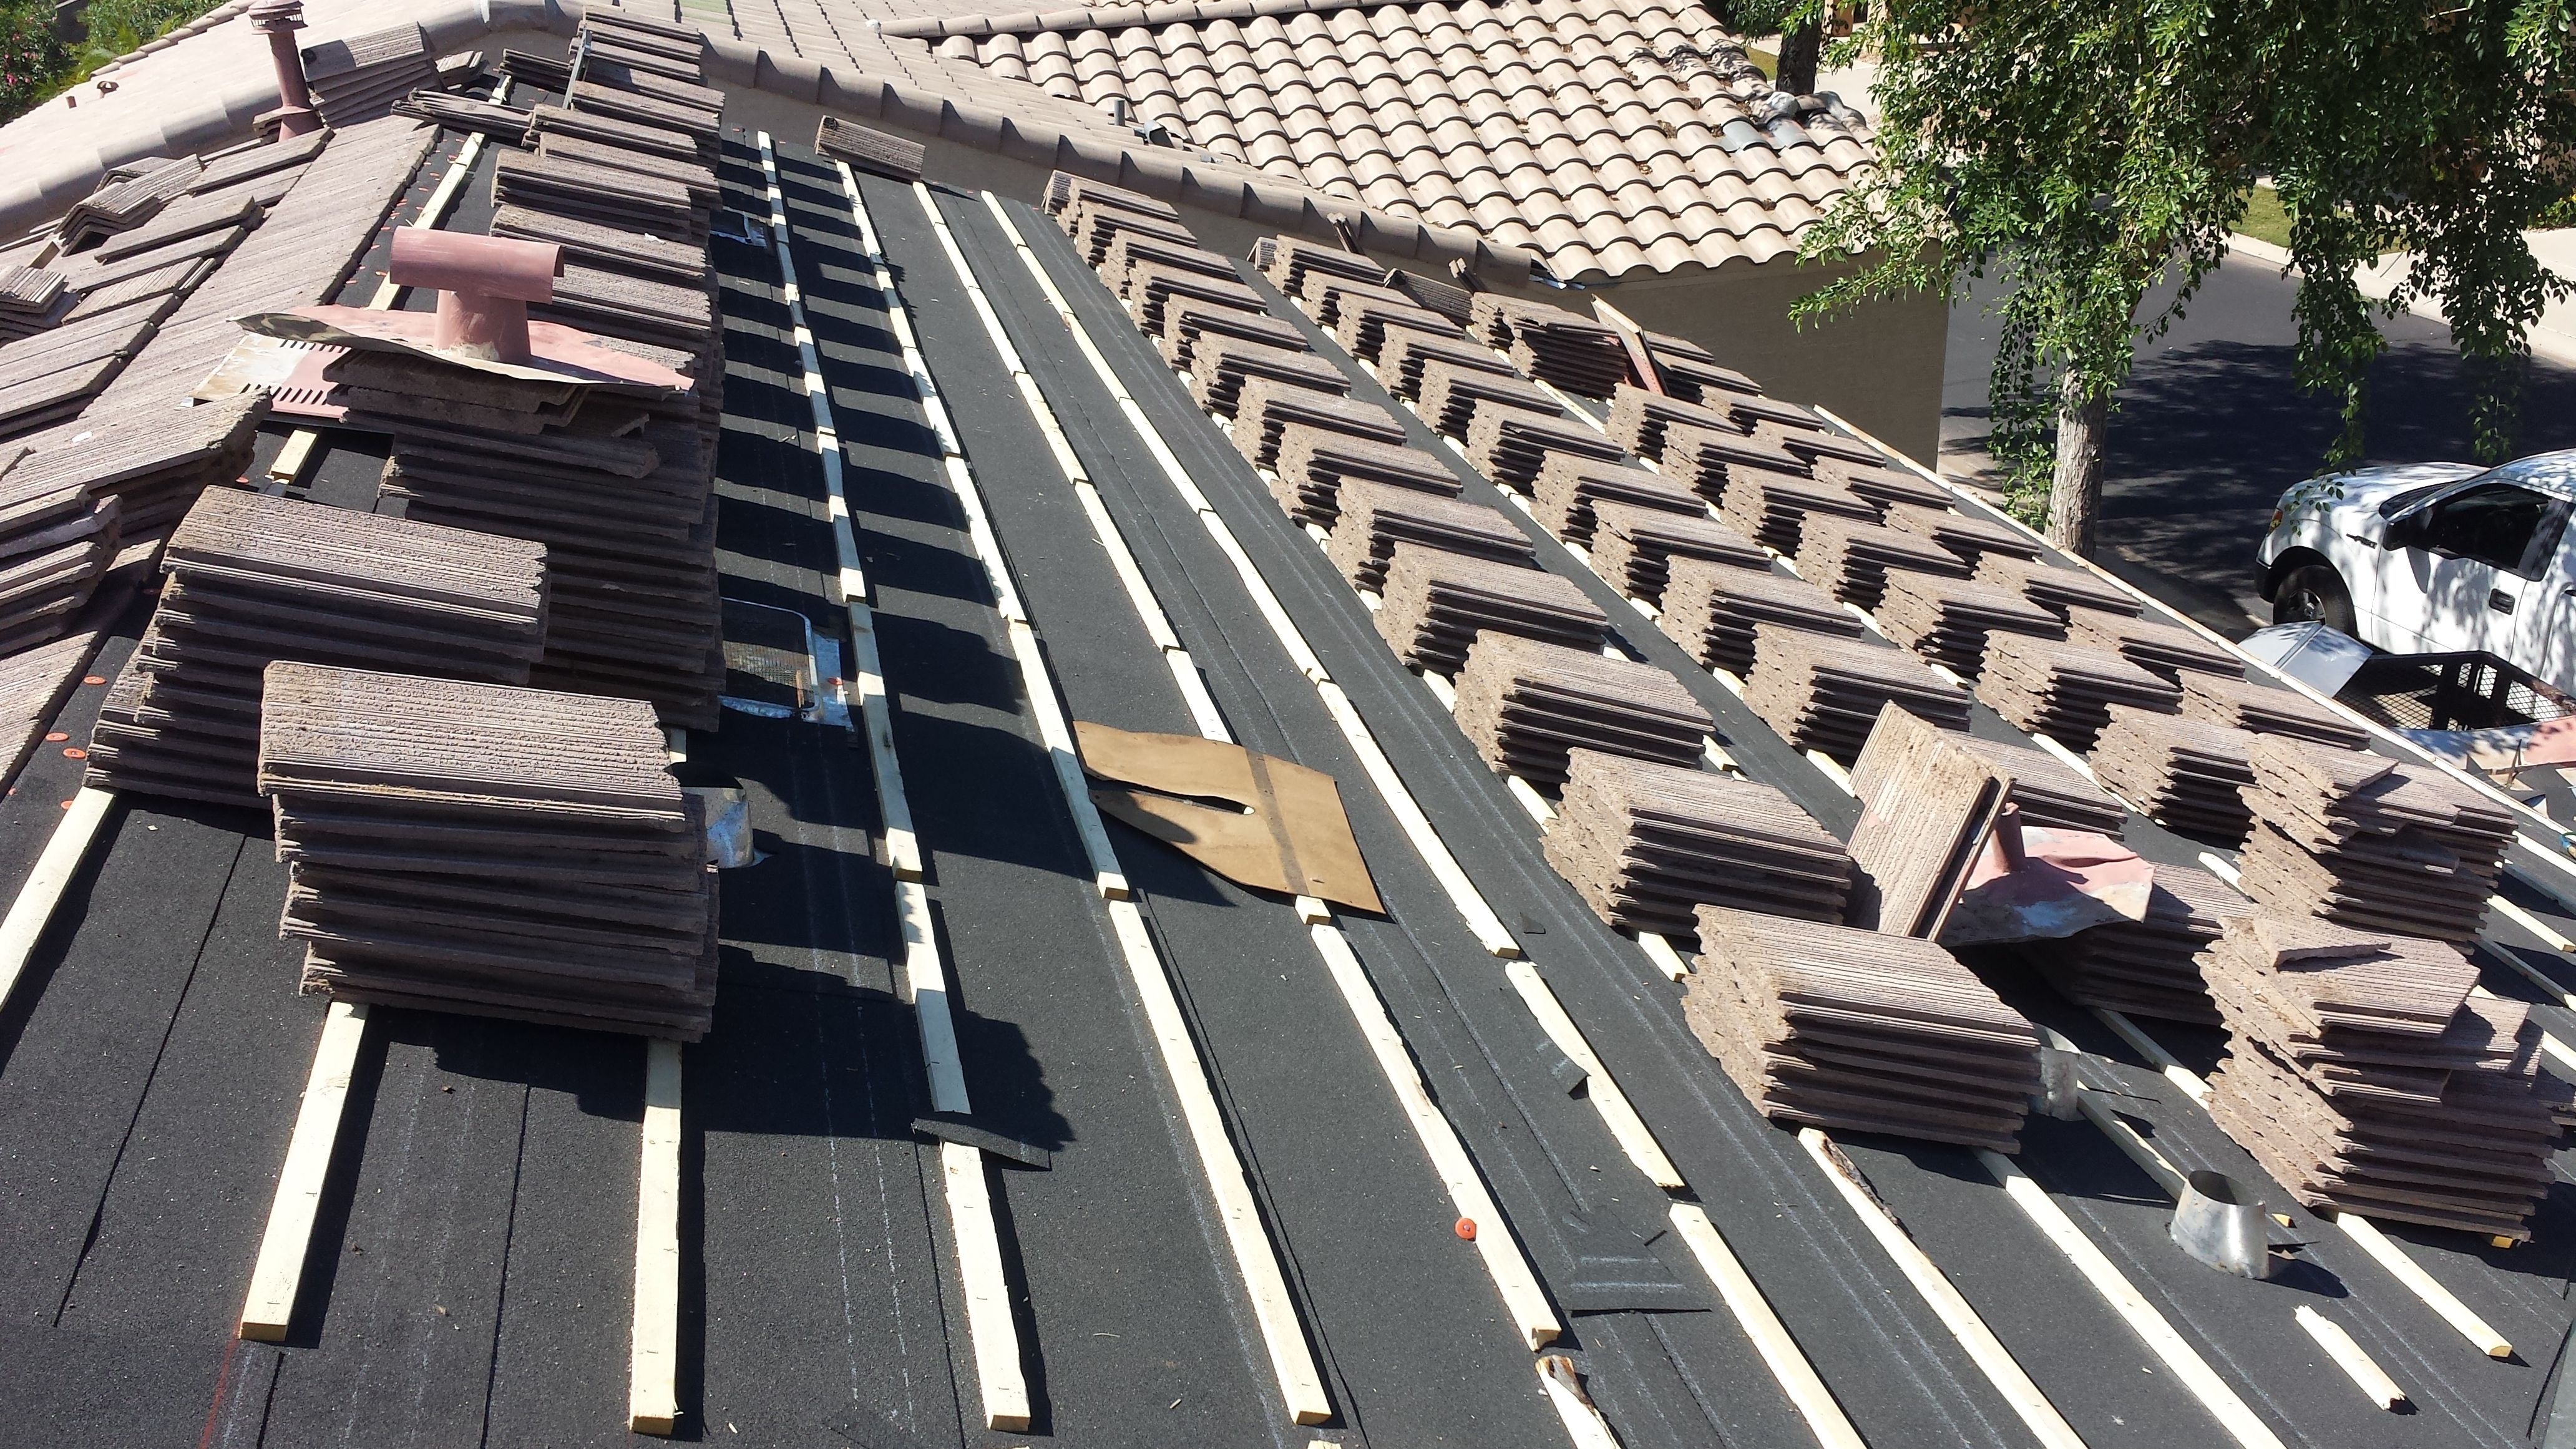 Flat Concrete Tiles This Roof Has Had An R R Where The Existing Tiles Have Been Removed The Underlayment And B Concrete Tiles Aluminum Roof Roof Installation